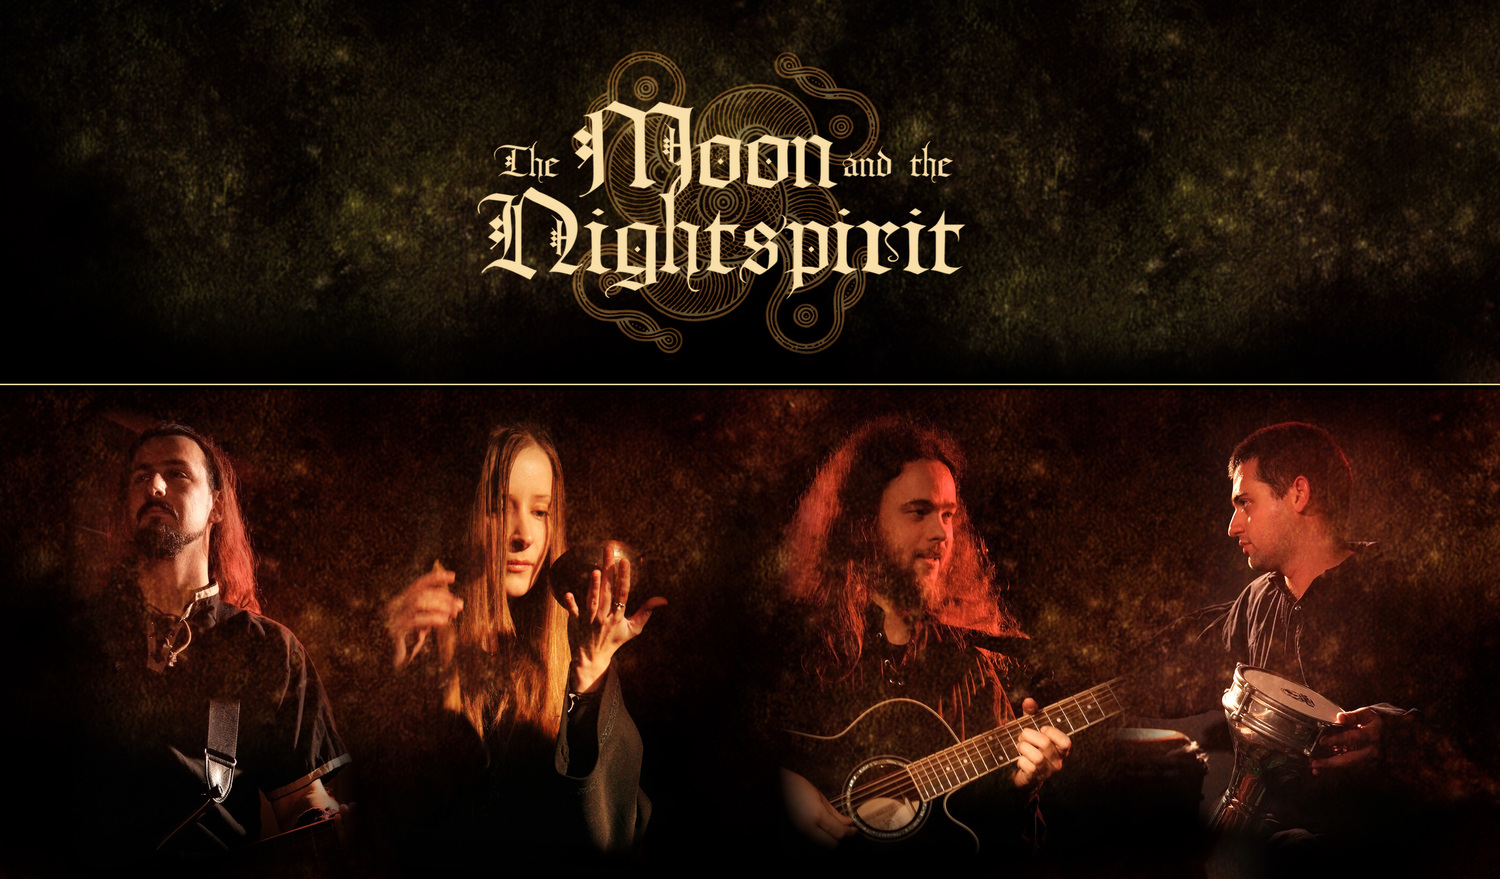 The Moon and The Nightspirit